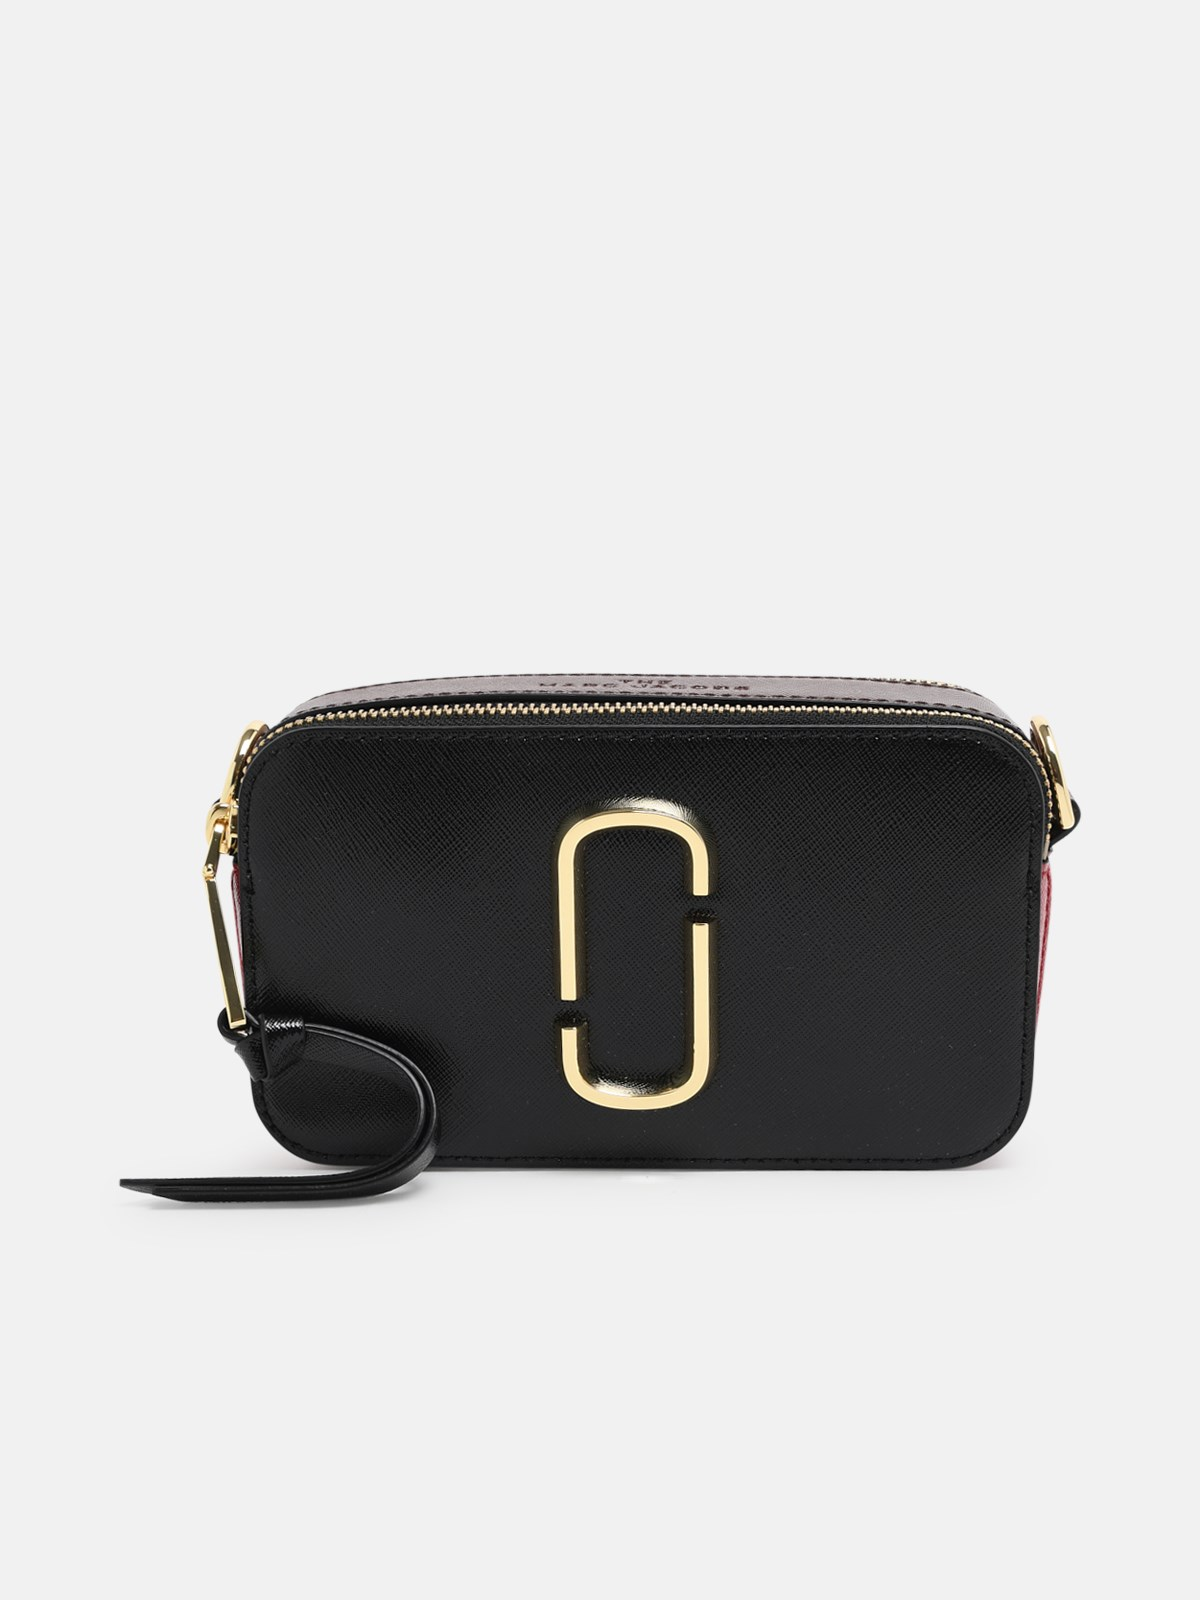 Marc Jacobs (the) Tracolla Snapshot Mj Rossa E Nera In Black